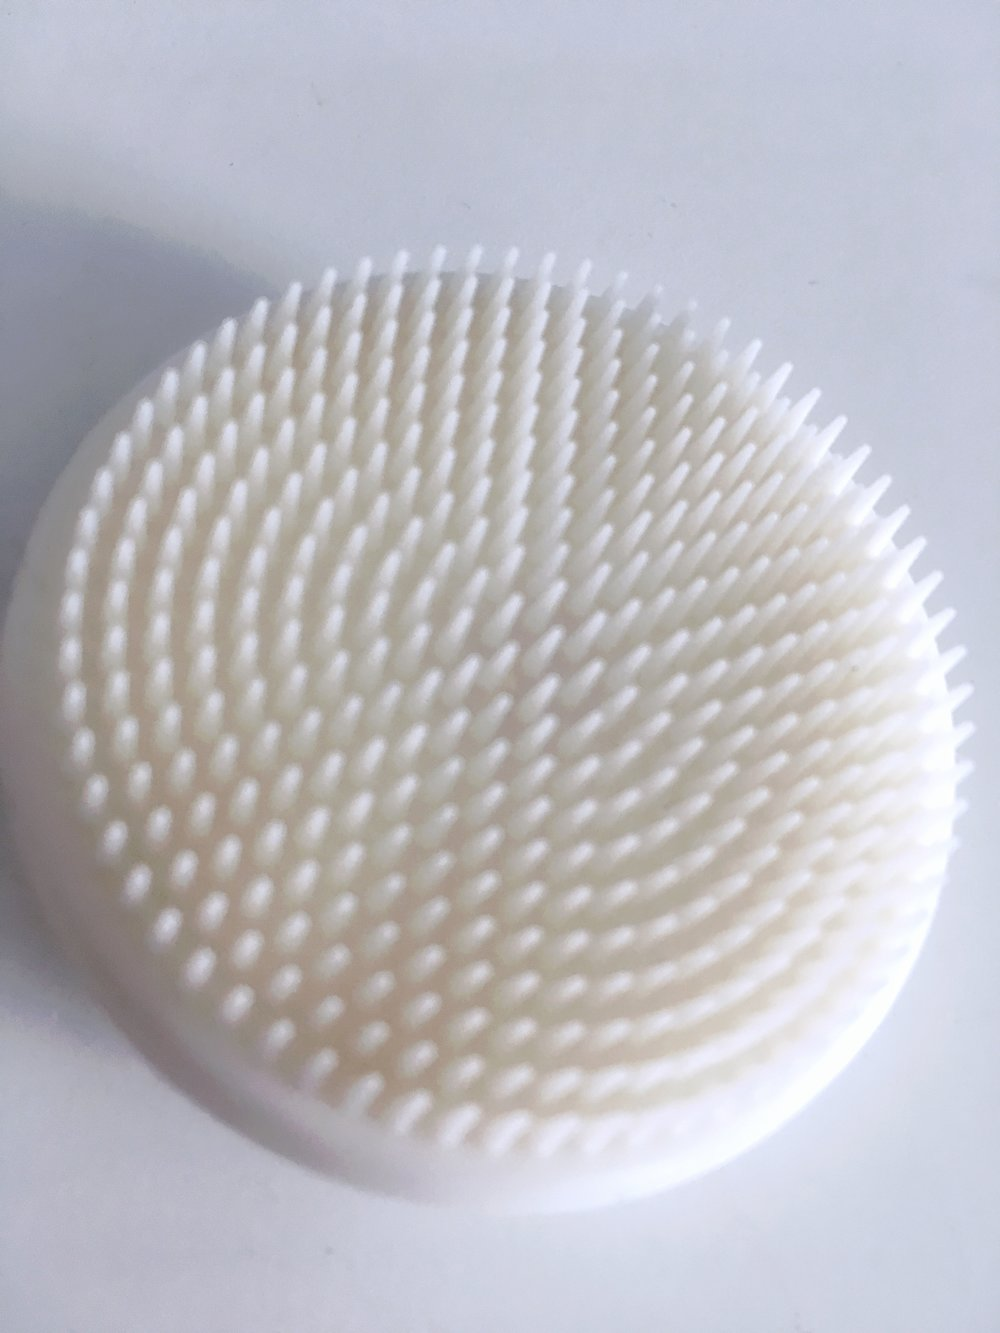 Silicone Brush - Perfect for a gentle deep clean. It doesn't irritate the skin and is perfect for even dry and sensitive skin helps. It helps unclog pores which enhances the absorption of your skin care products. I love using this one to take off my makeup.